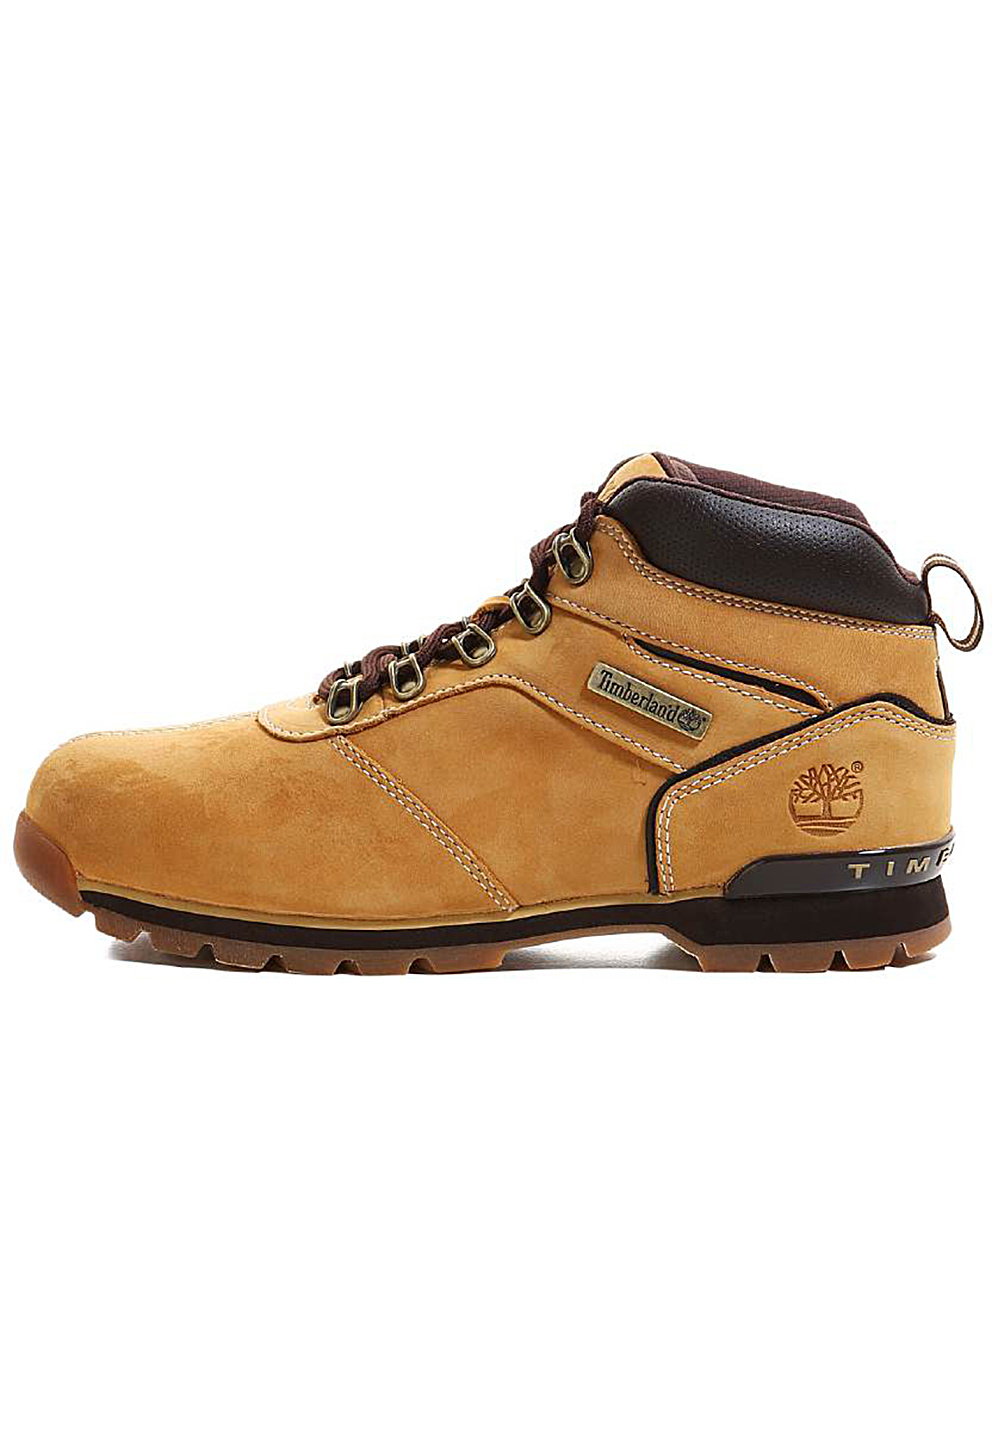 Stivali Uomo Sports Planet TIMBERLAND 2 per Splitrock Marrone vwnpFEq